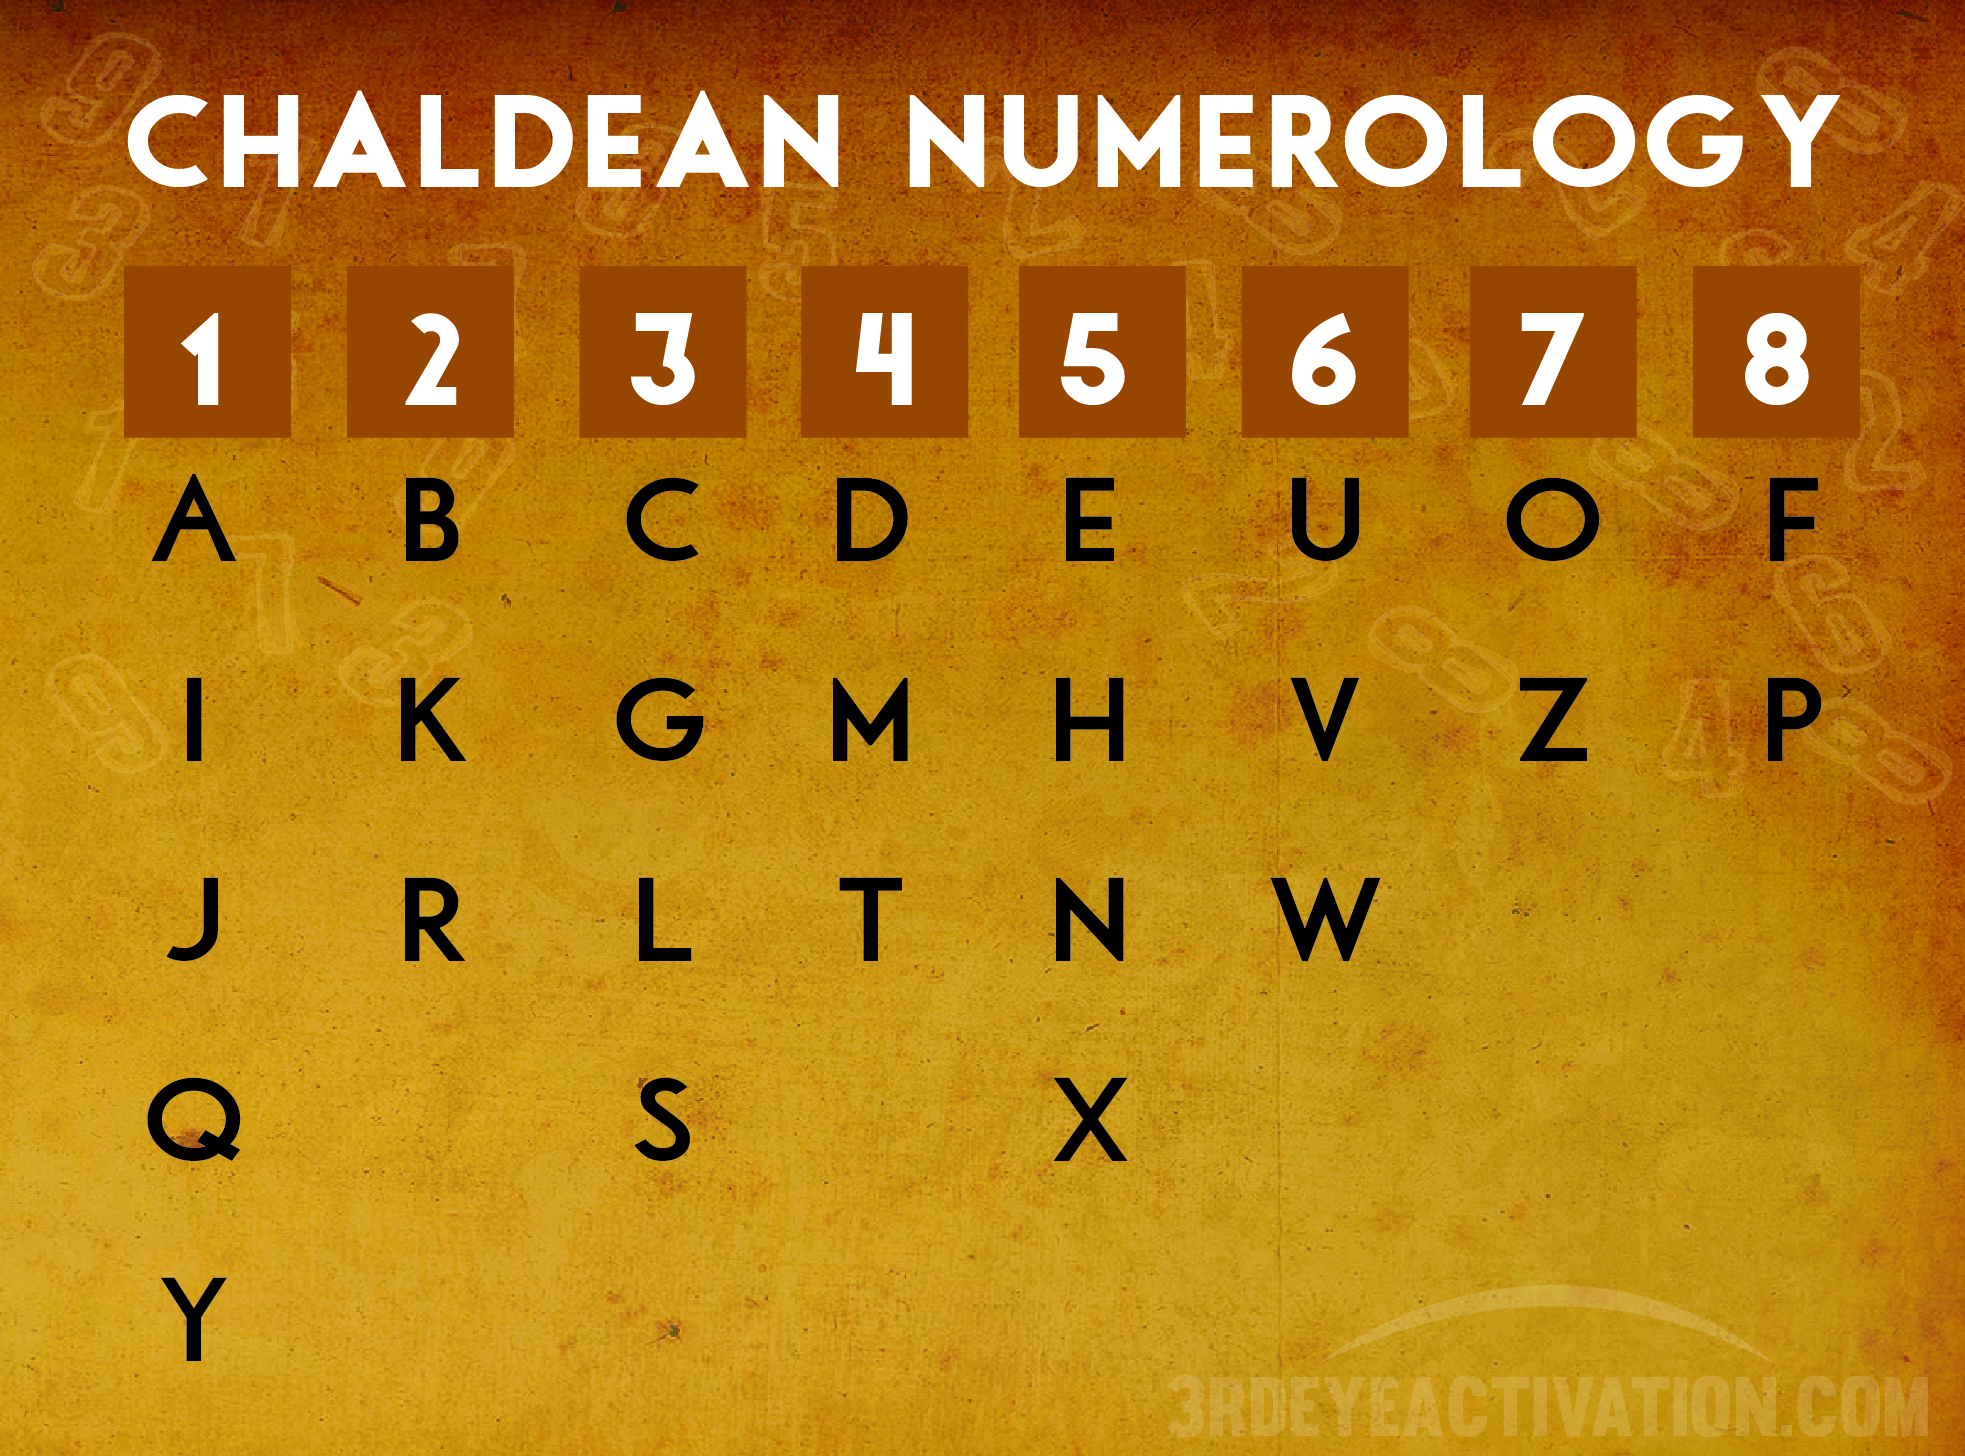 Full numerology chart core numbers name birthday chaldean numerology chart nvjuhfo Choice Image